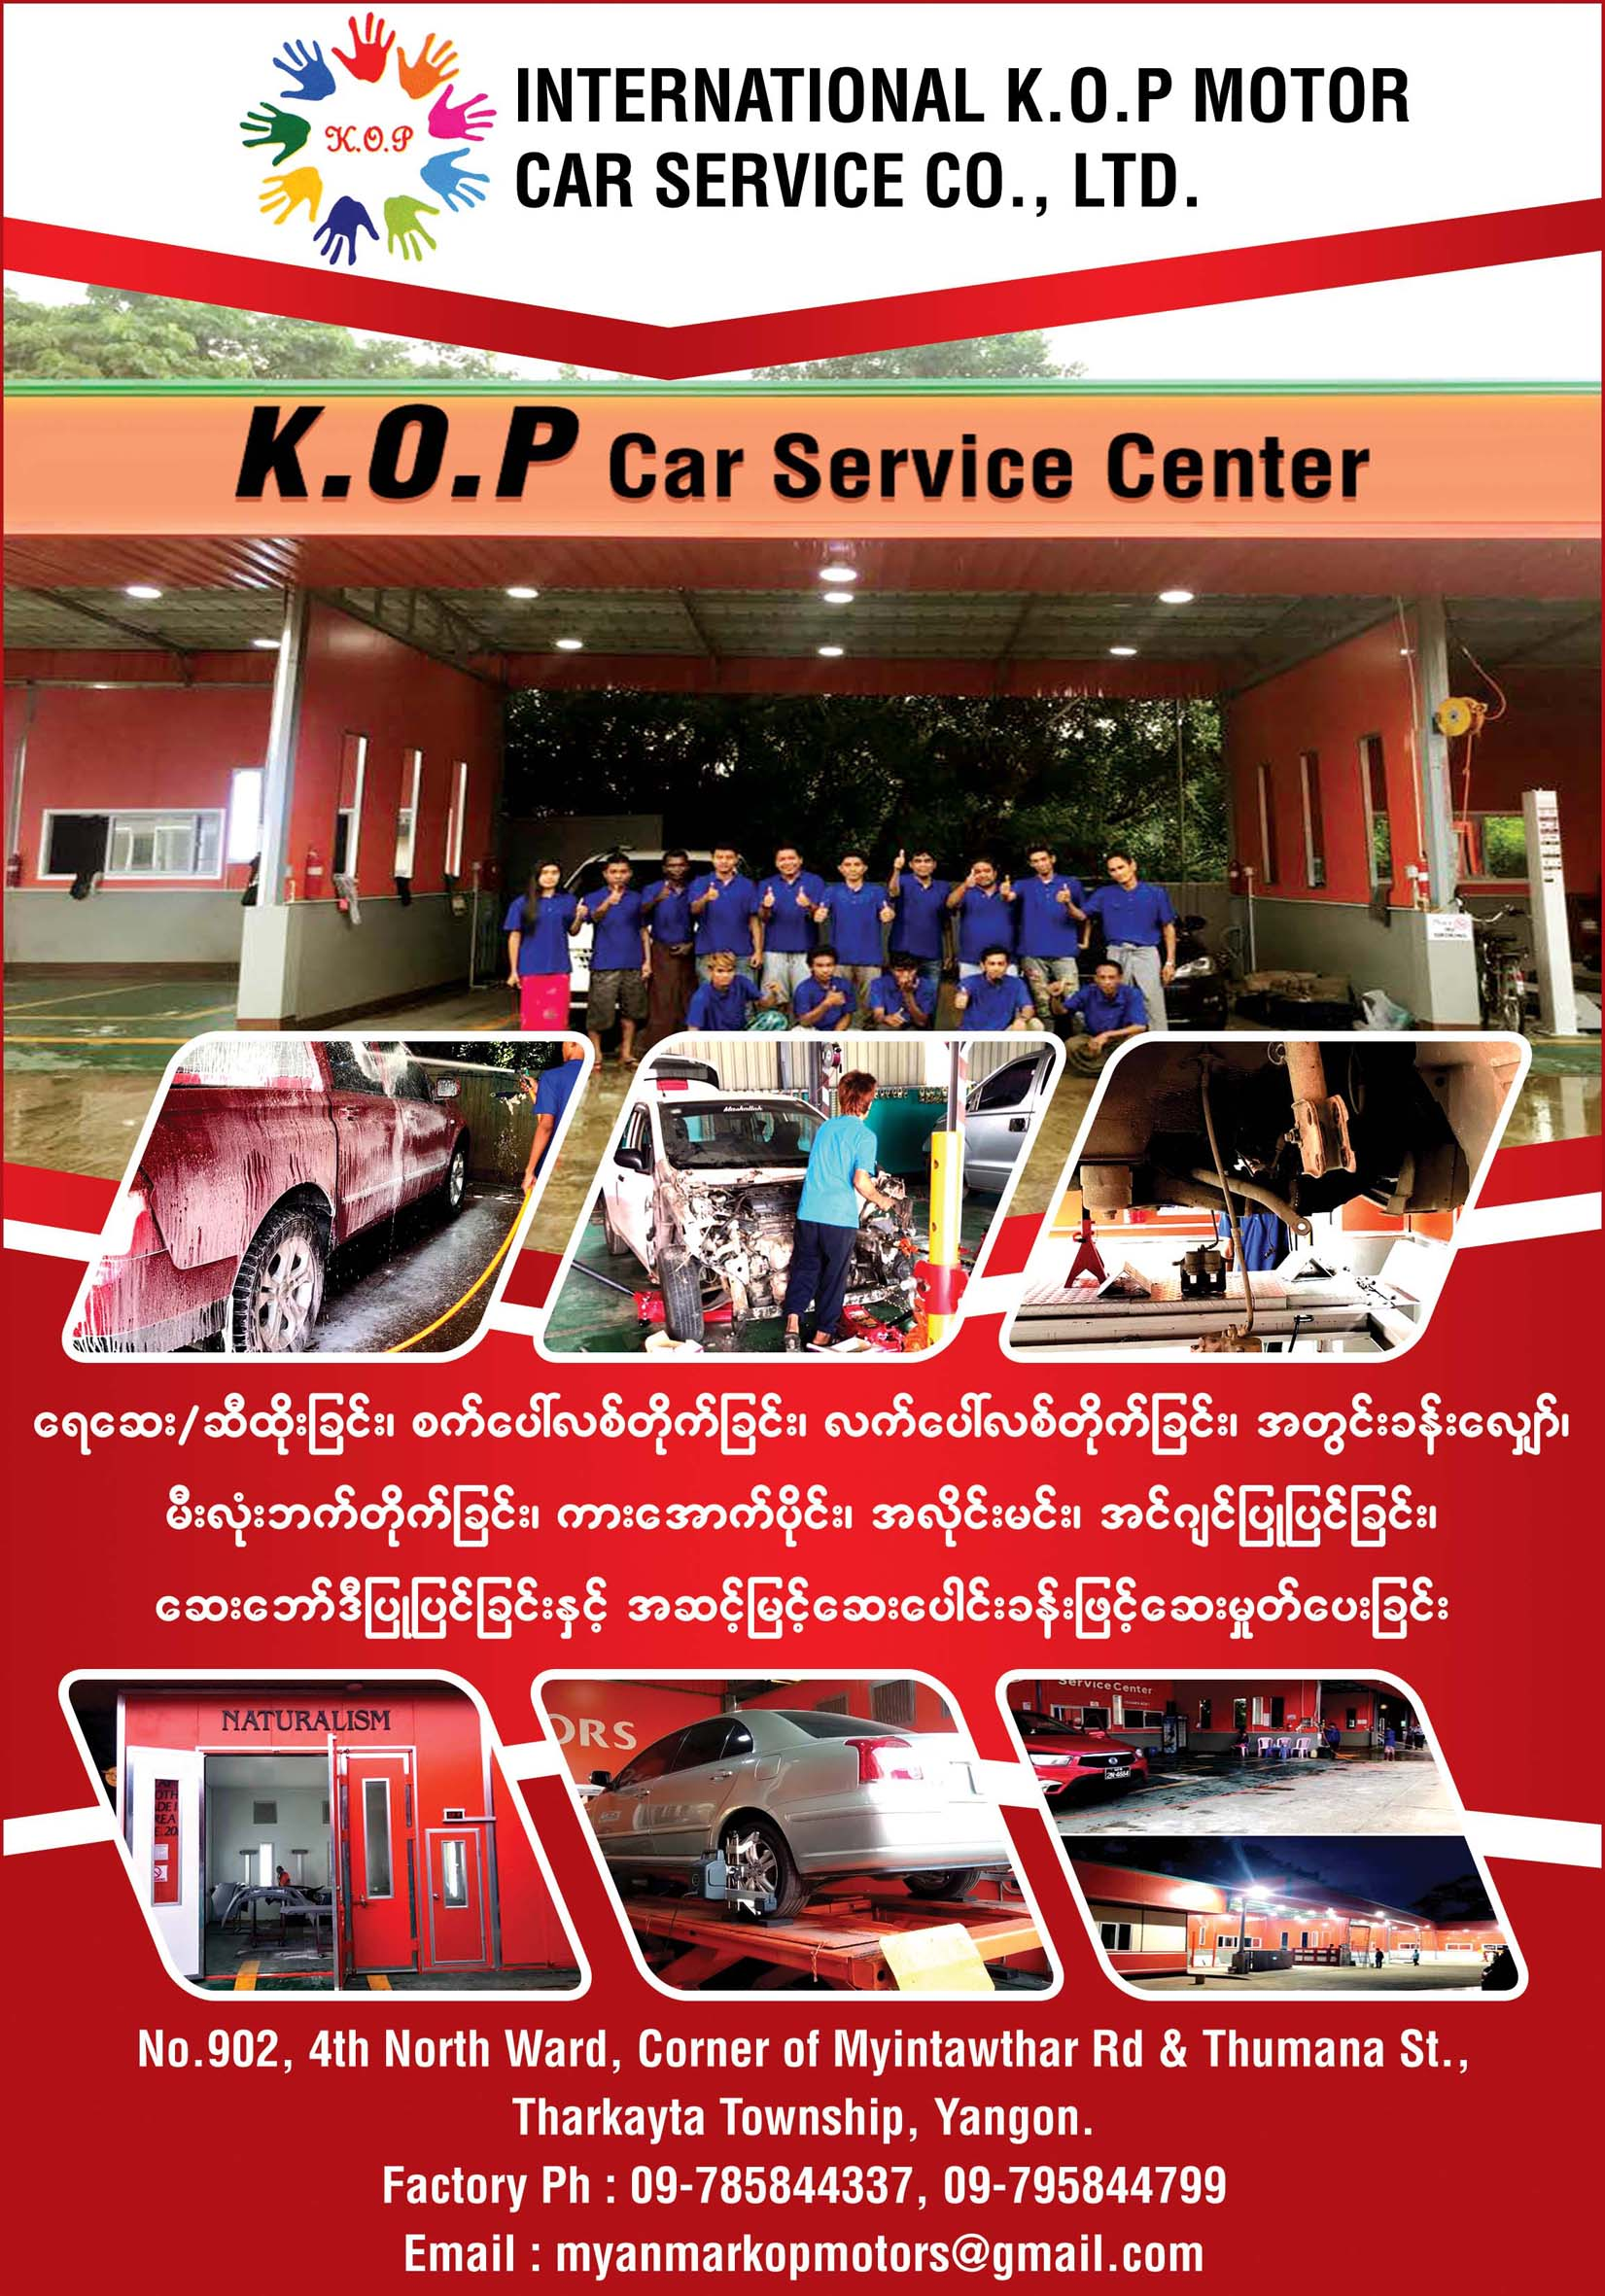 International K.O.P Motor Car Service Co., Ltd.